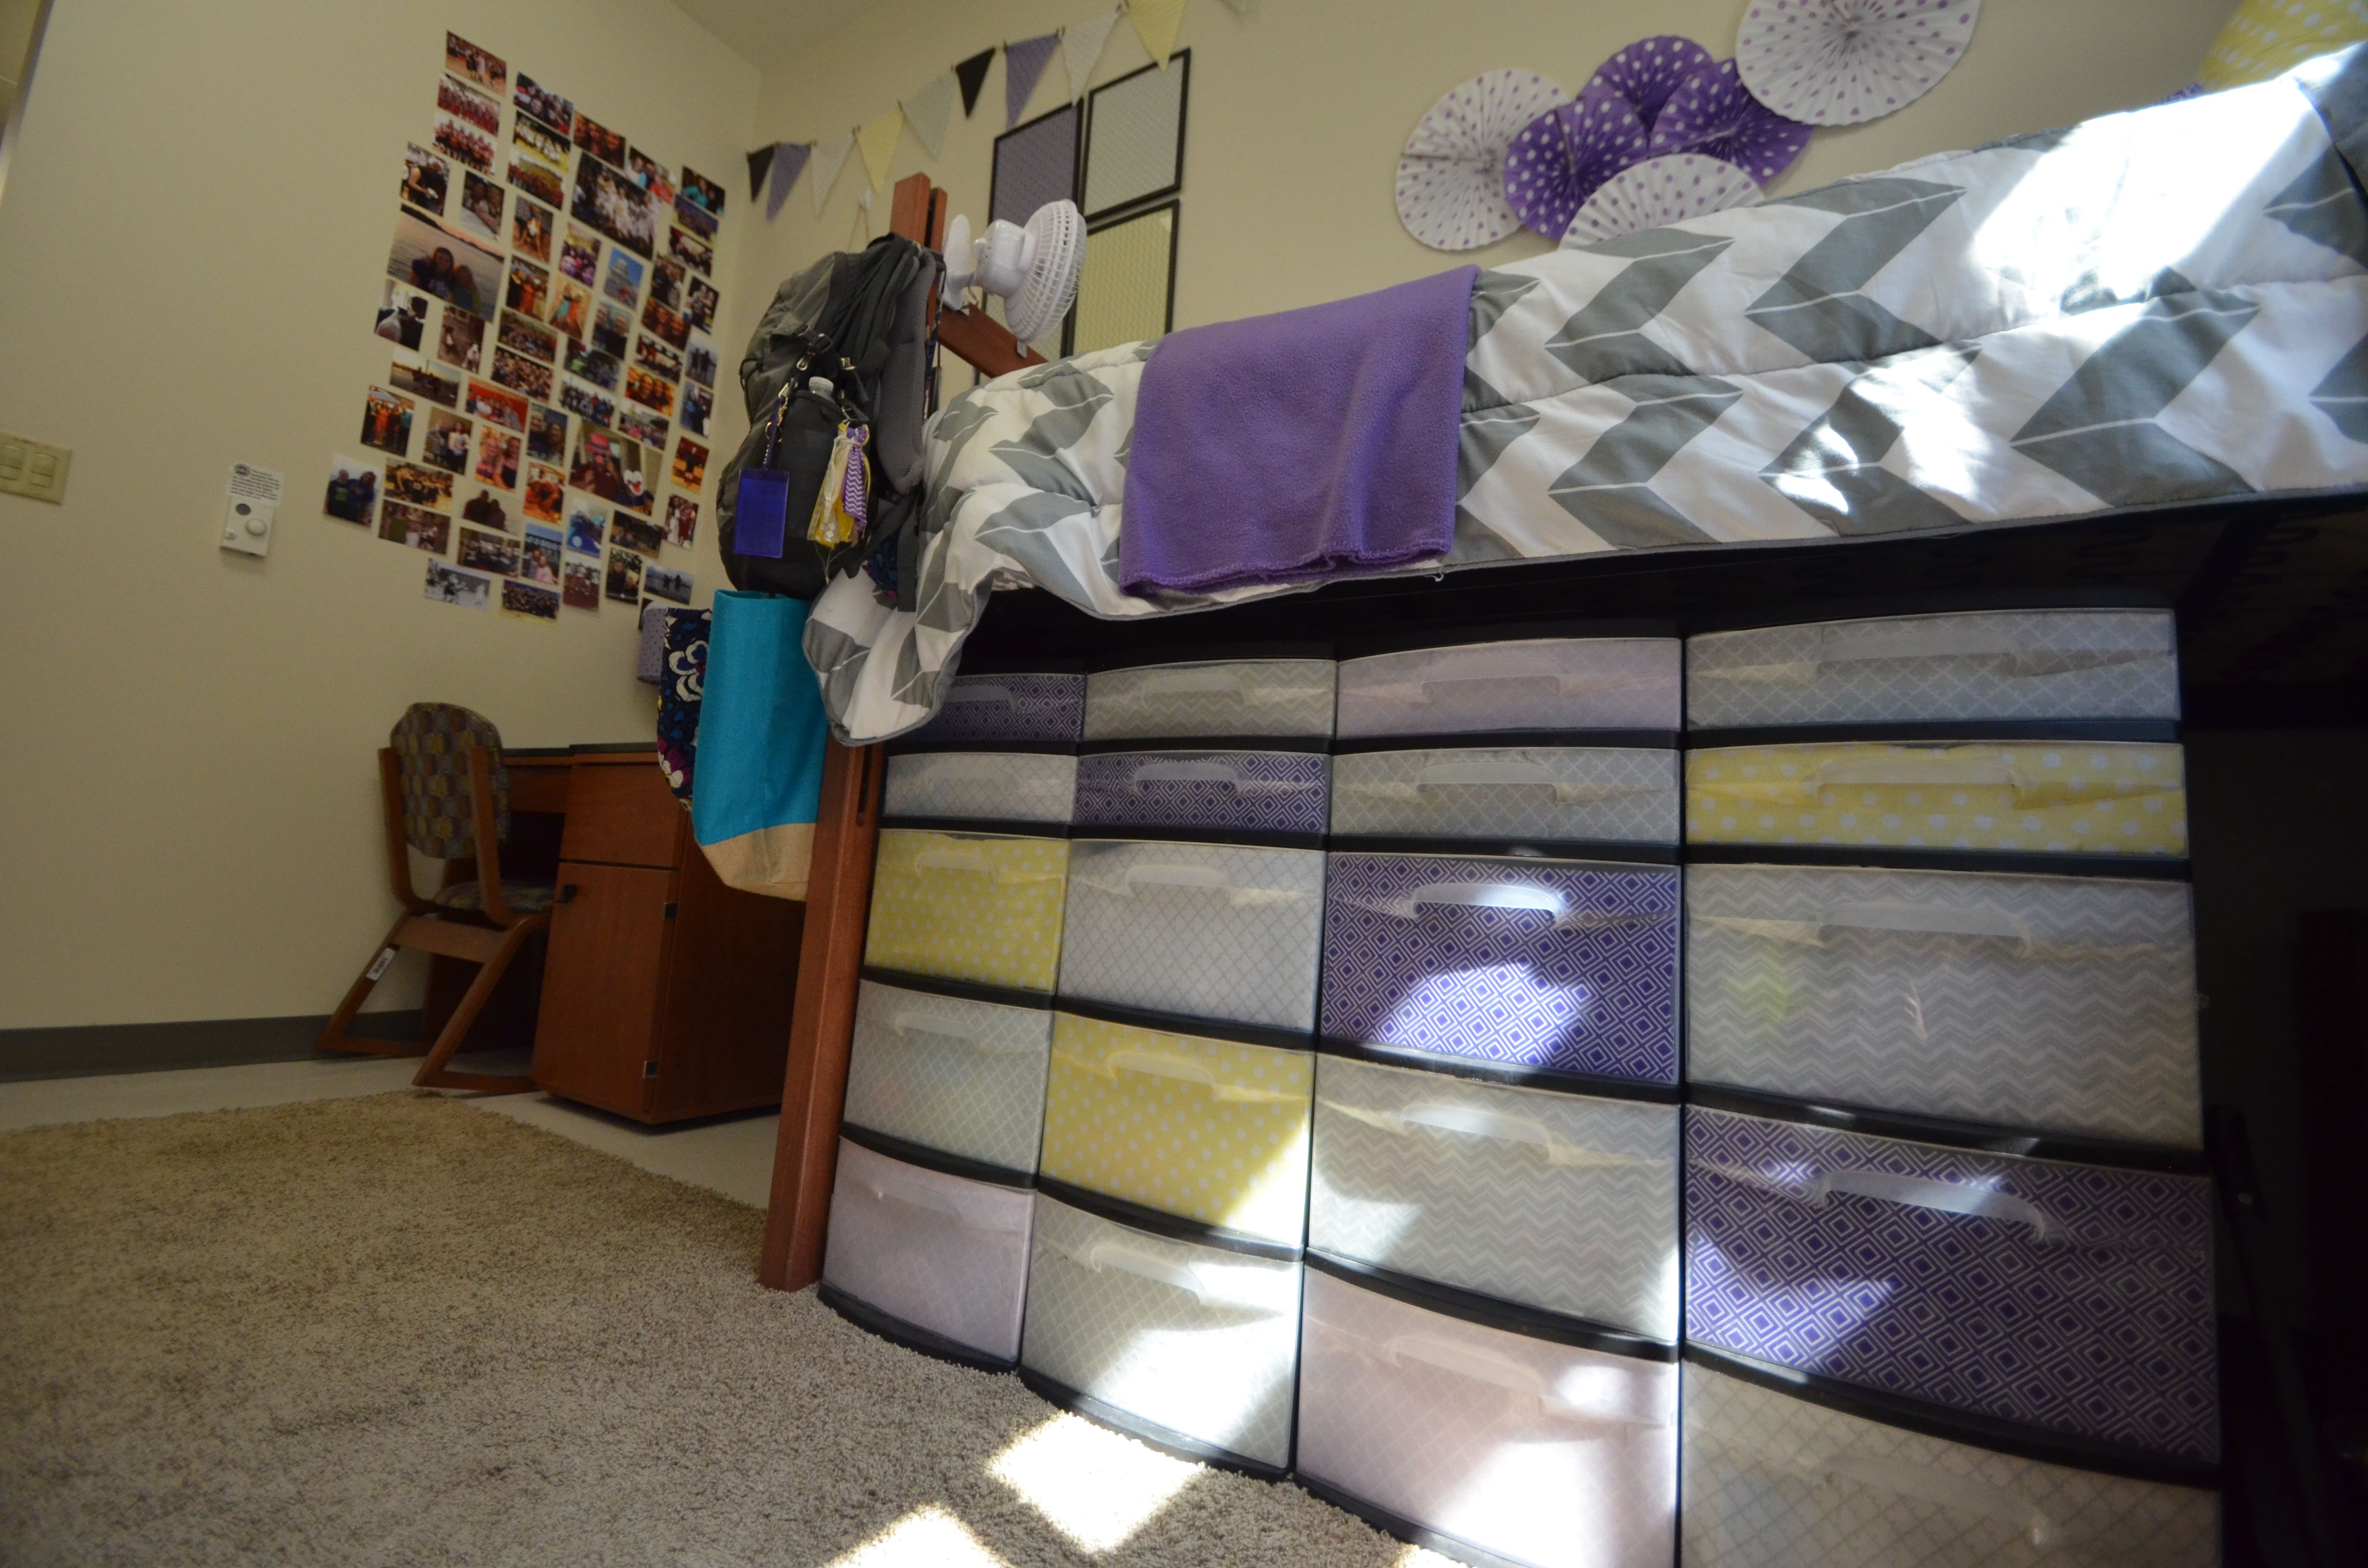 Don t for storage The beds in Cypress can be raised to fit